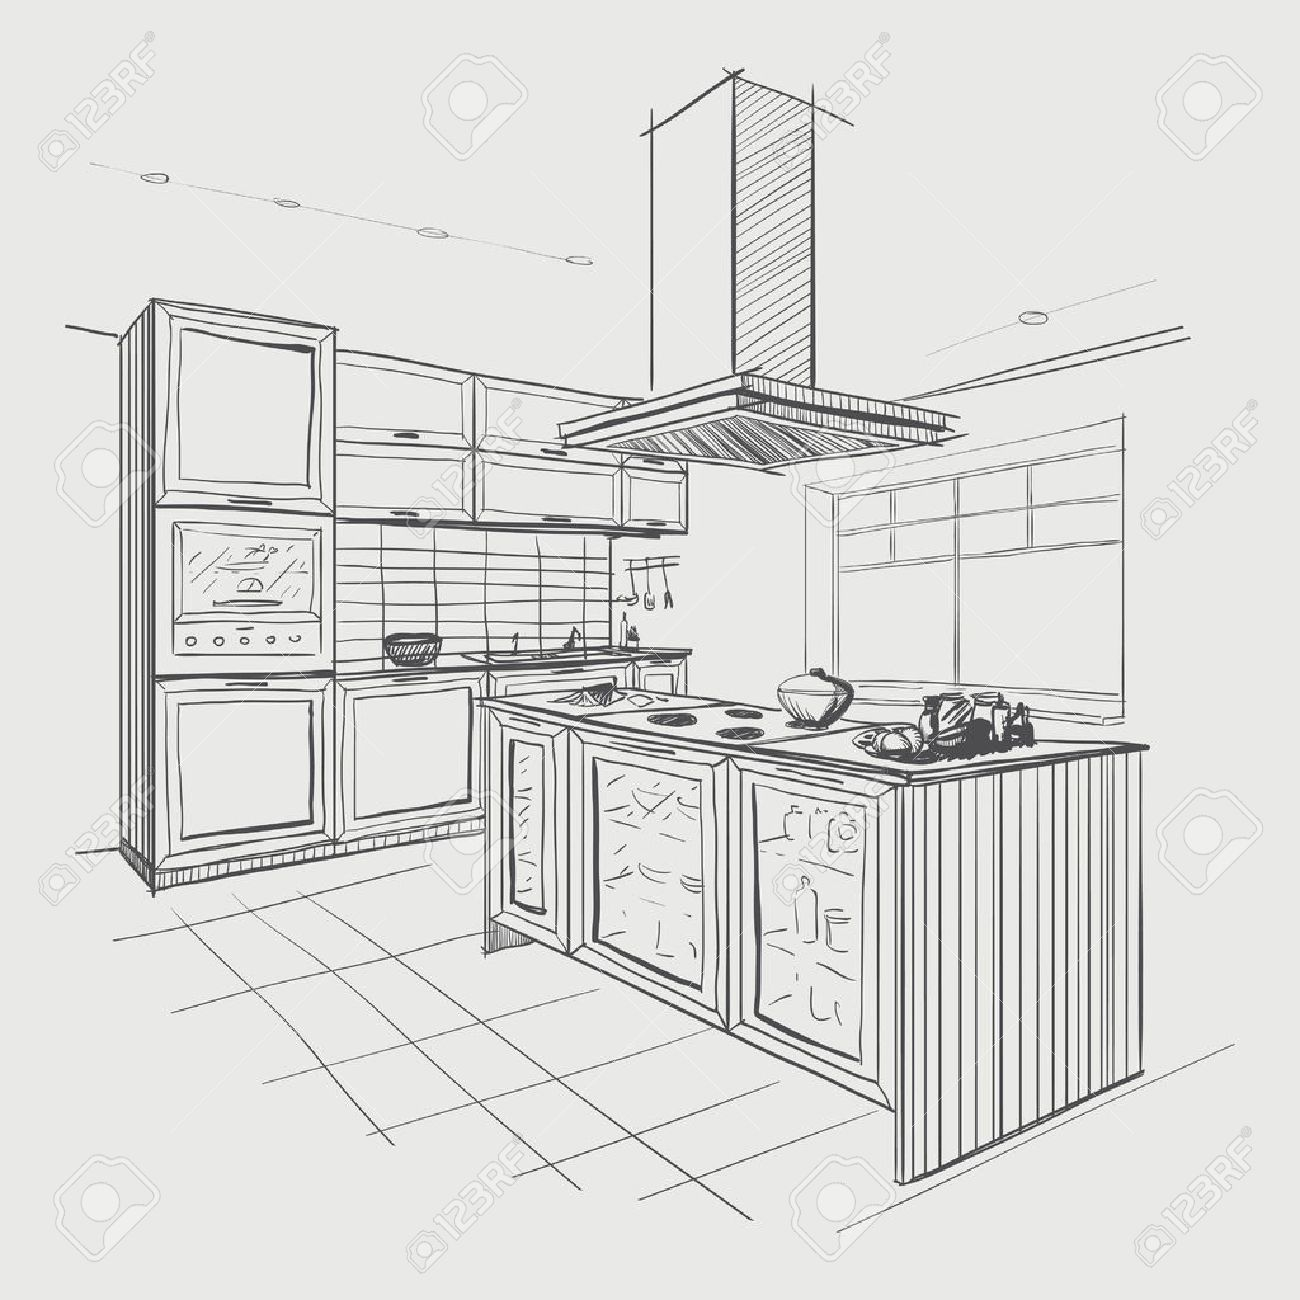 interior sketch of modern kitchen with island. royalty free